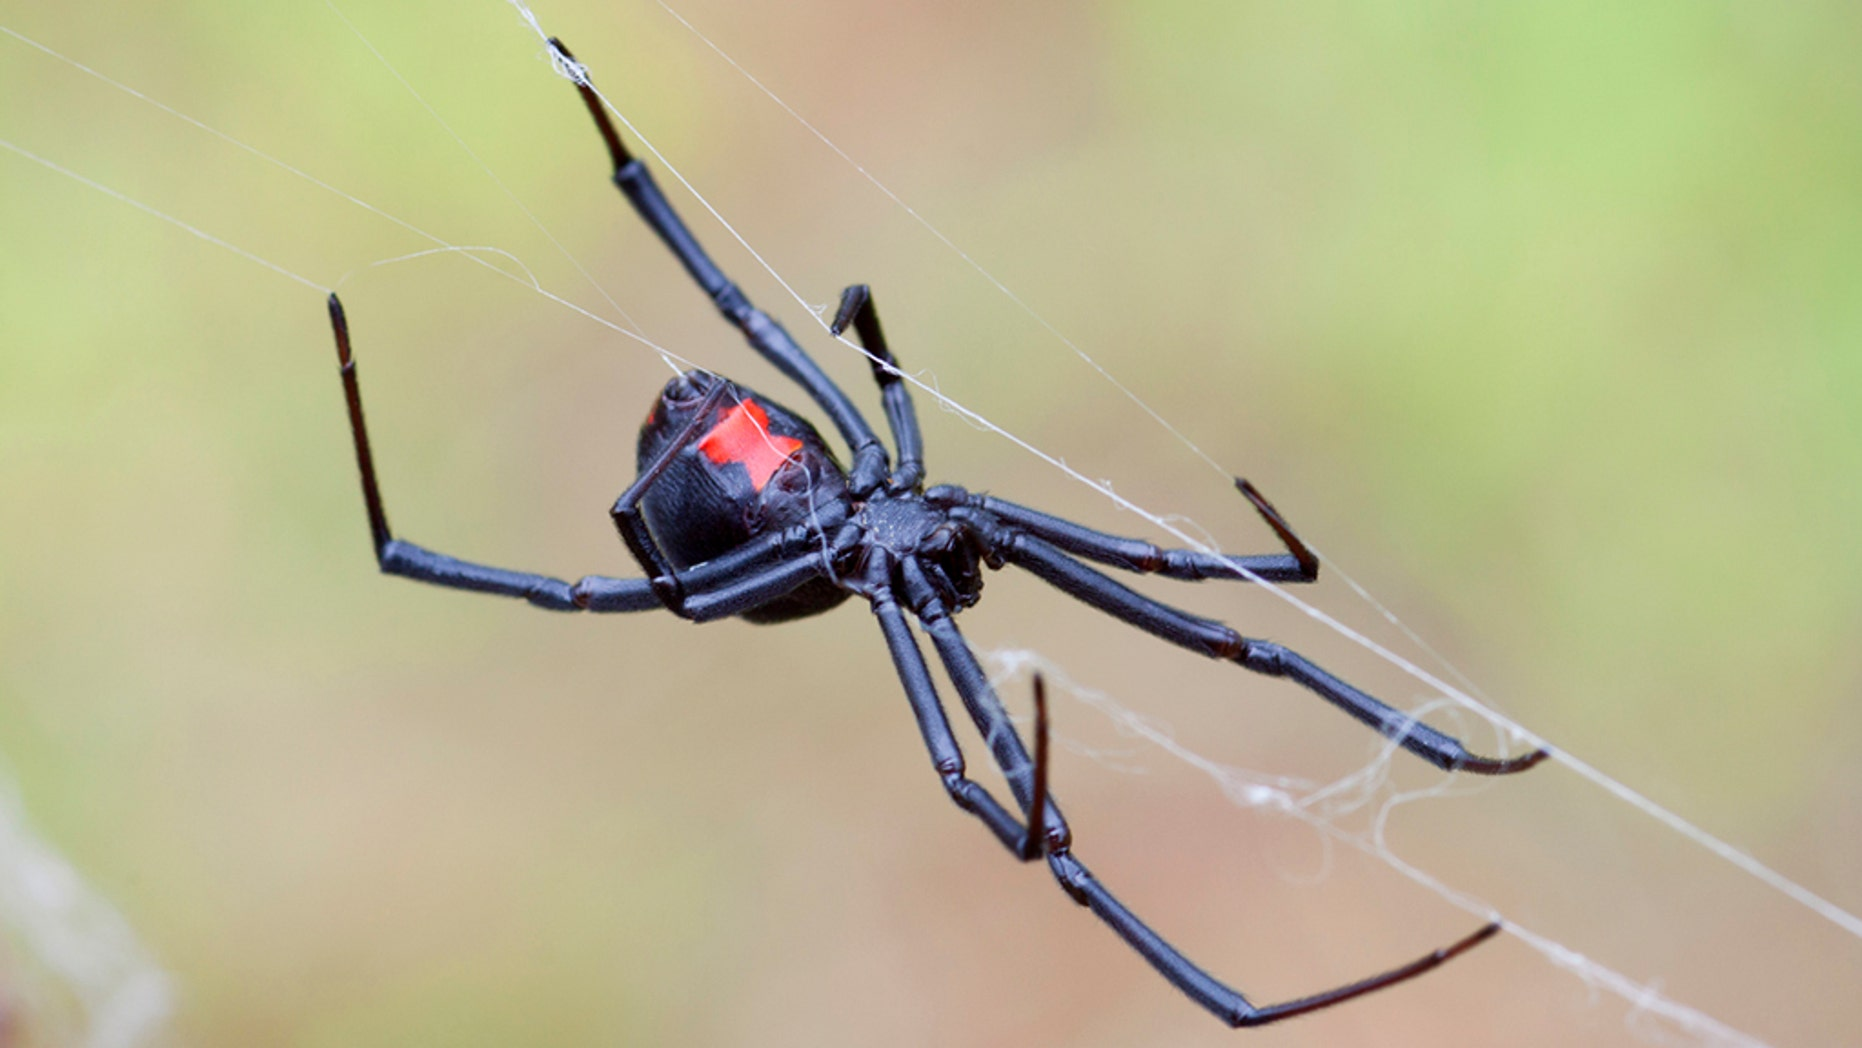 Man uses blowtorch to kill spiders - sets parents home on fire